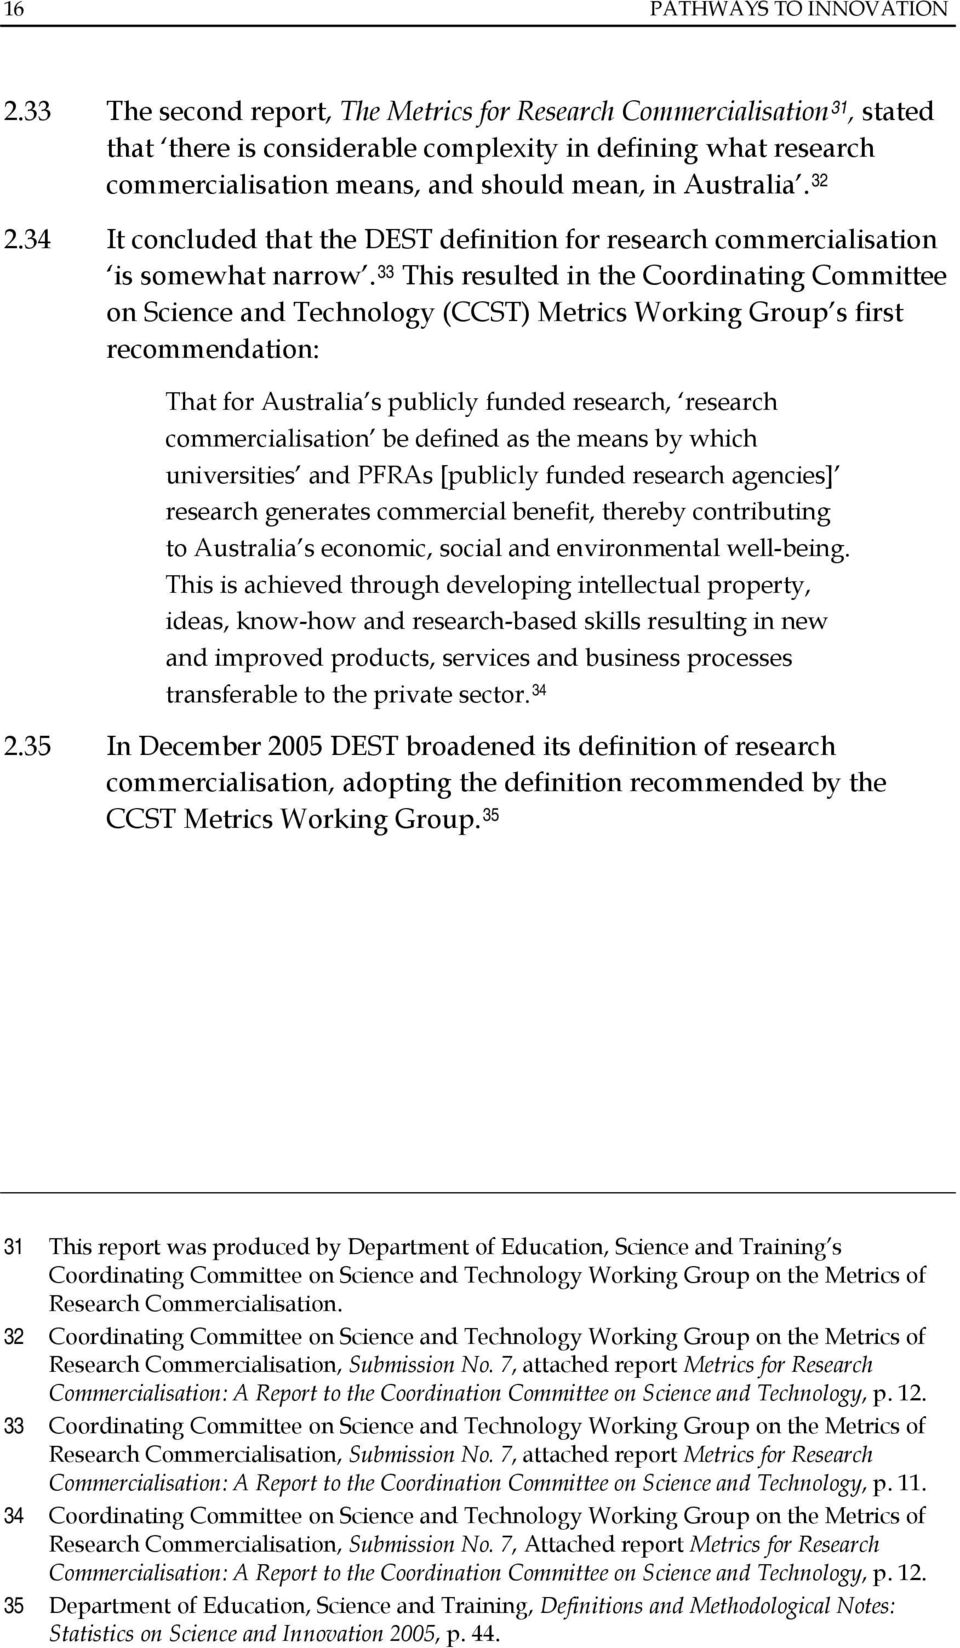 32 2.34 It concluded that the DEST definition for research commercialisation is somewhat narrow.